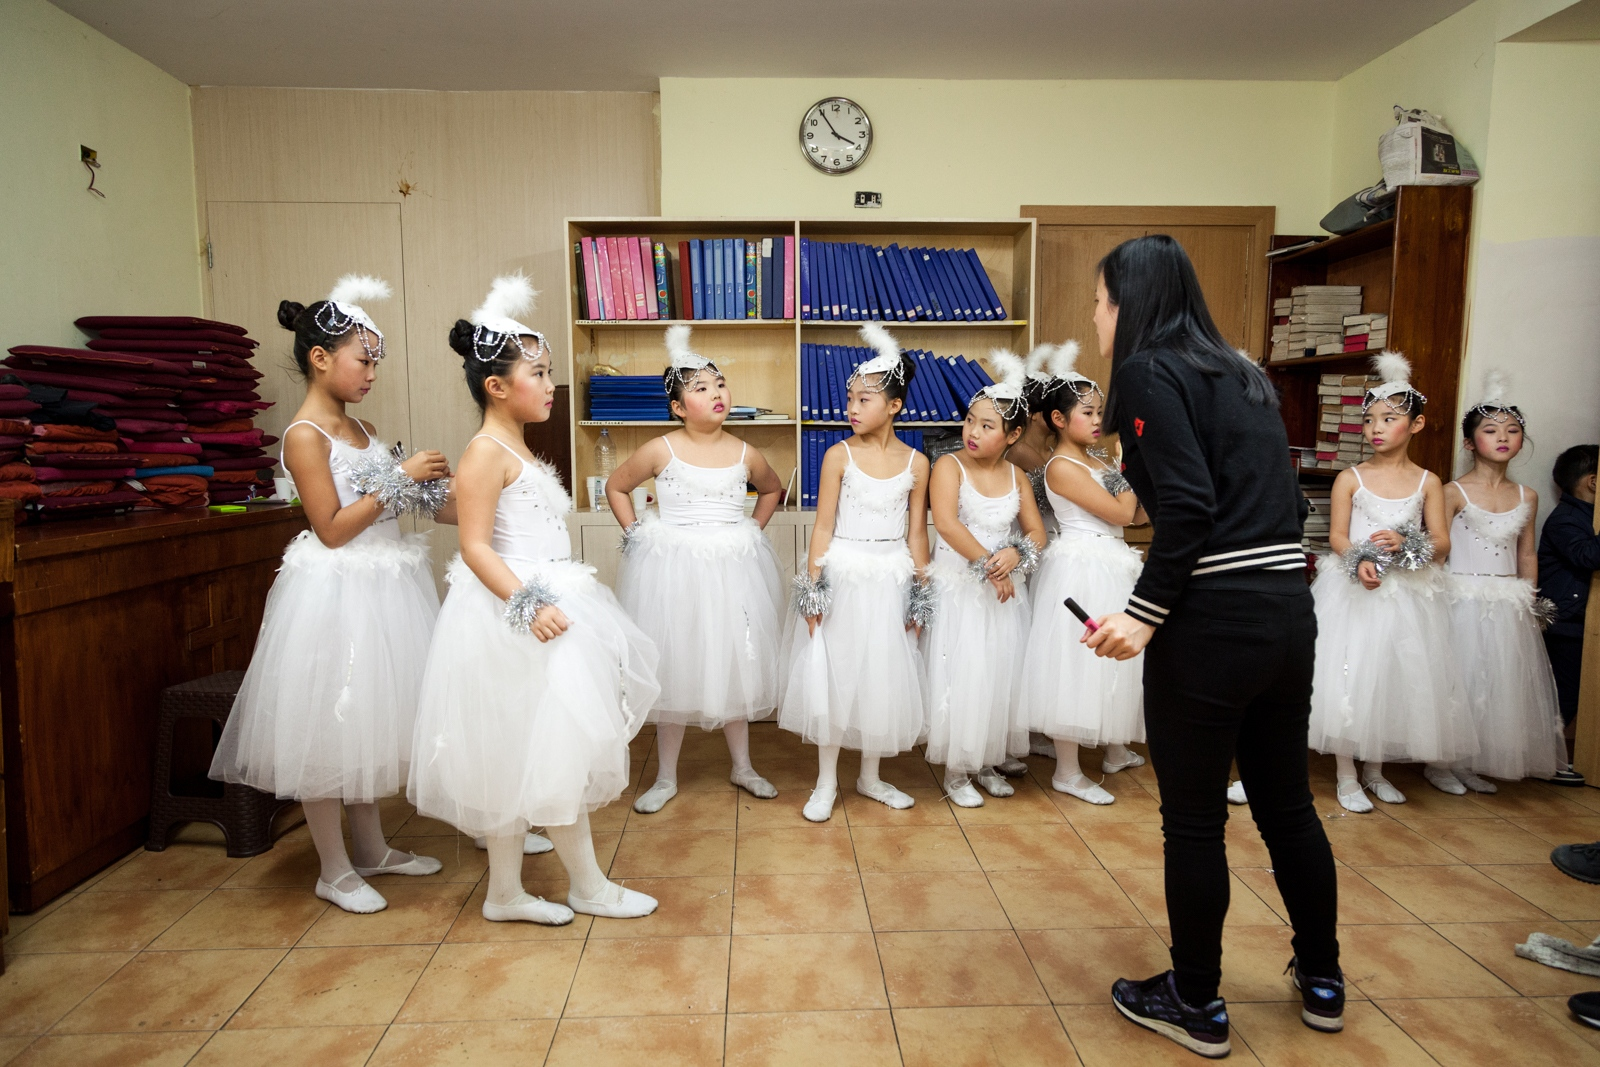 Dec. 25, 2016 - Little girls listen to the teacher's instructions while waiting to perform during the Christmas show at the Chinese Evangelical Church n the multicultural Esquilino neighborhood in downtown Rome.